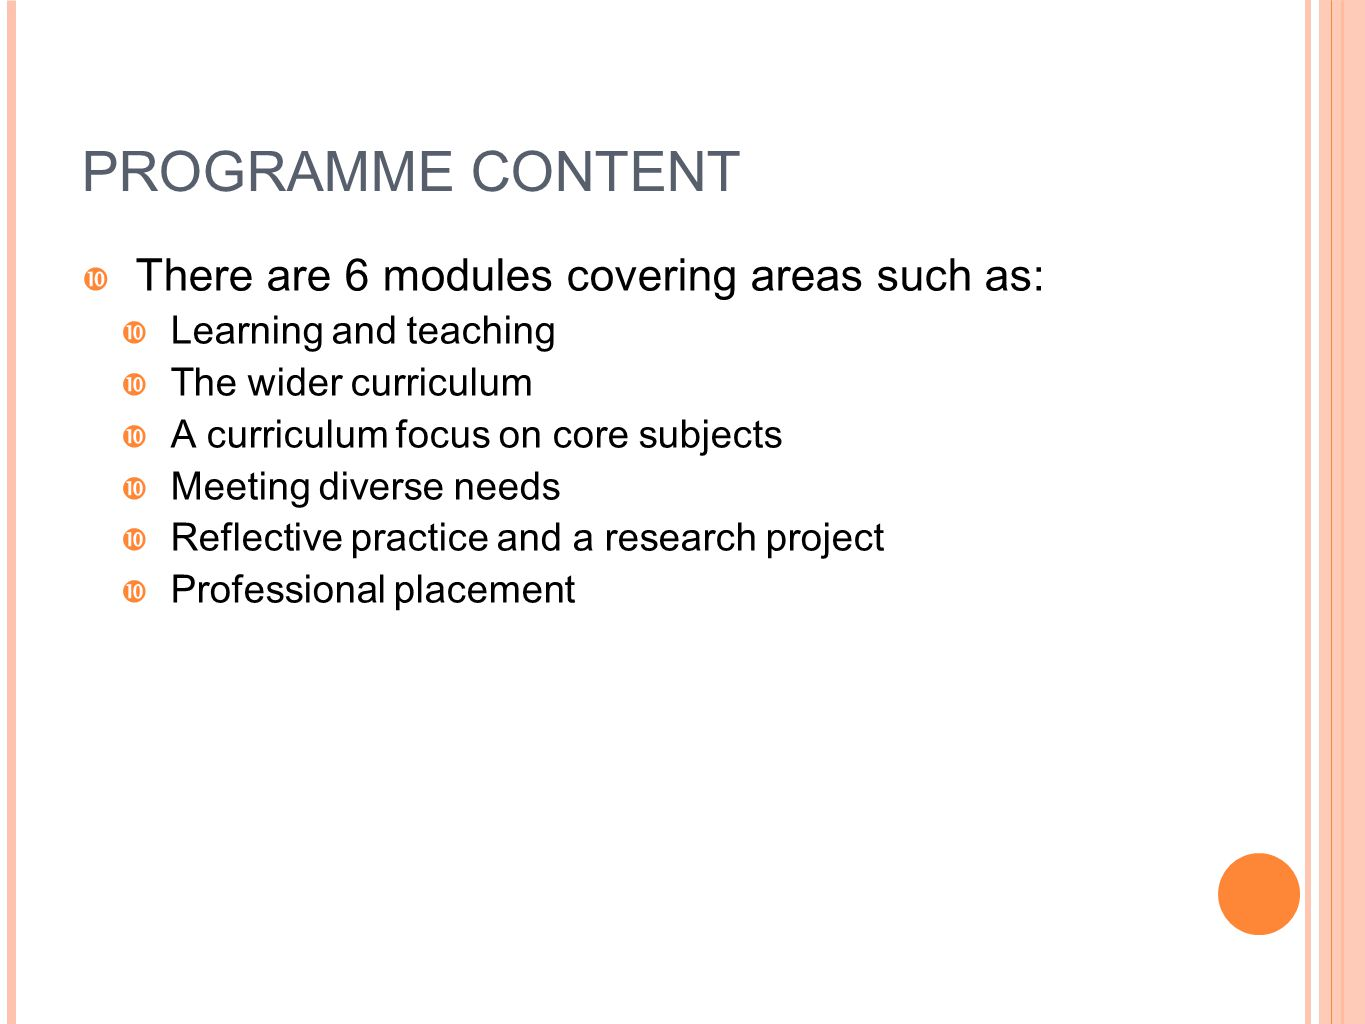 PROGRAMME CONTENT There are 6 modules covering areas such as: